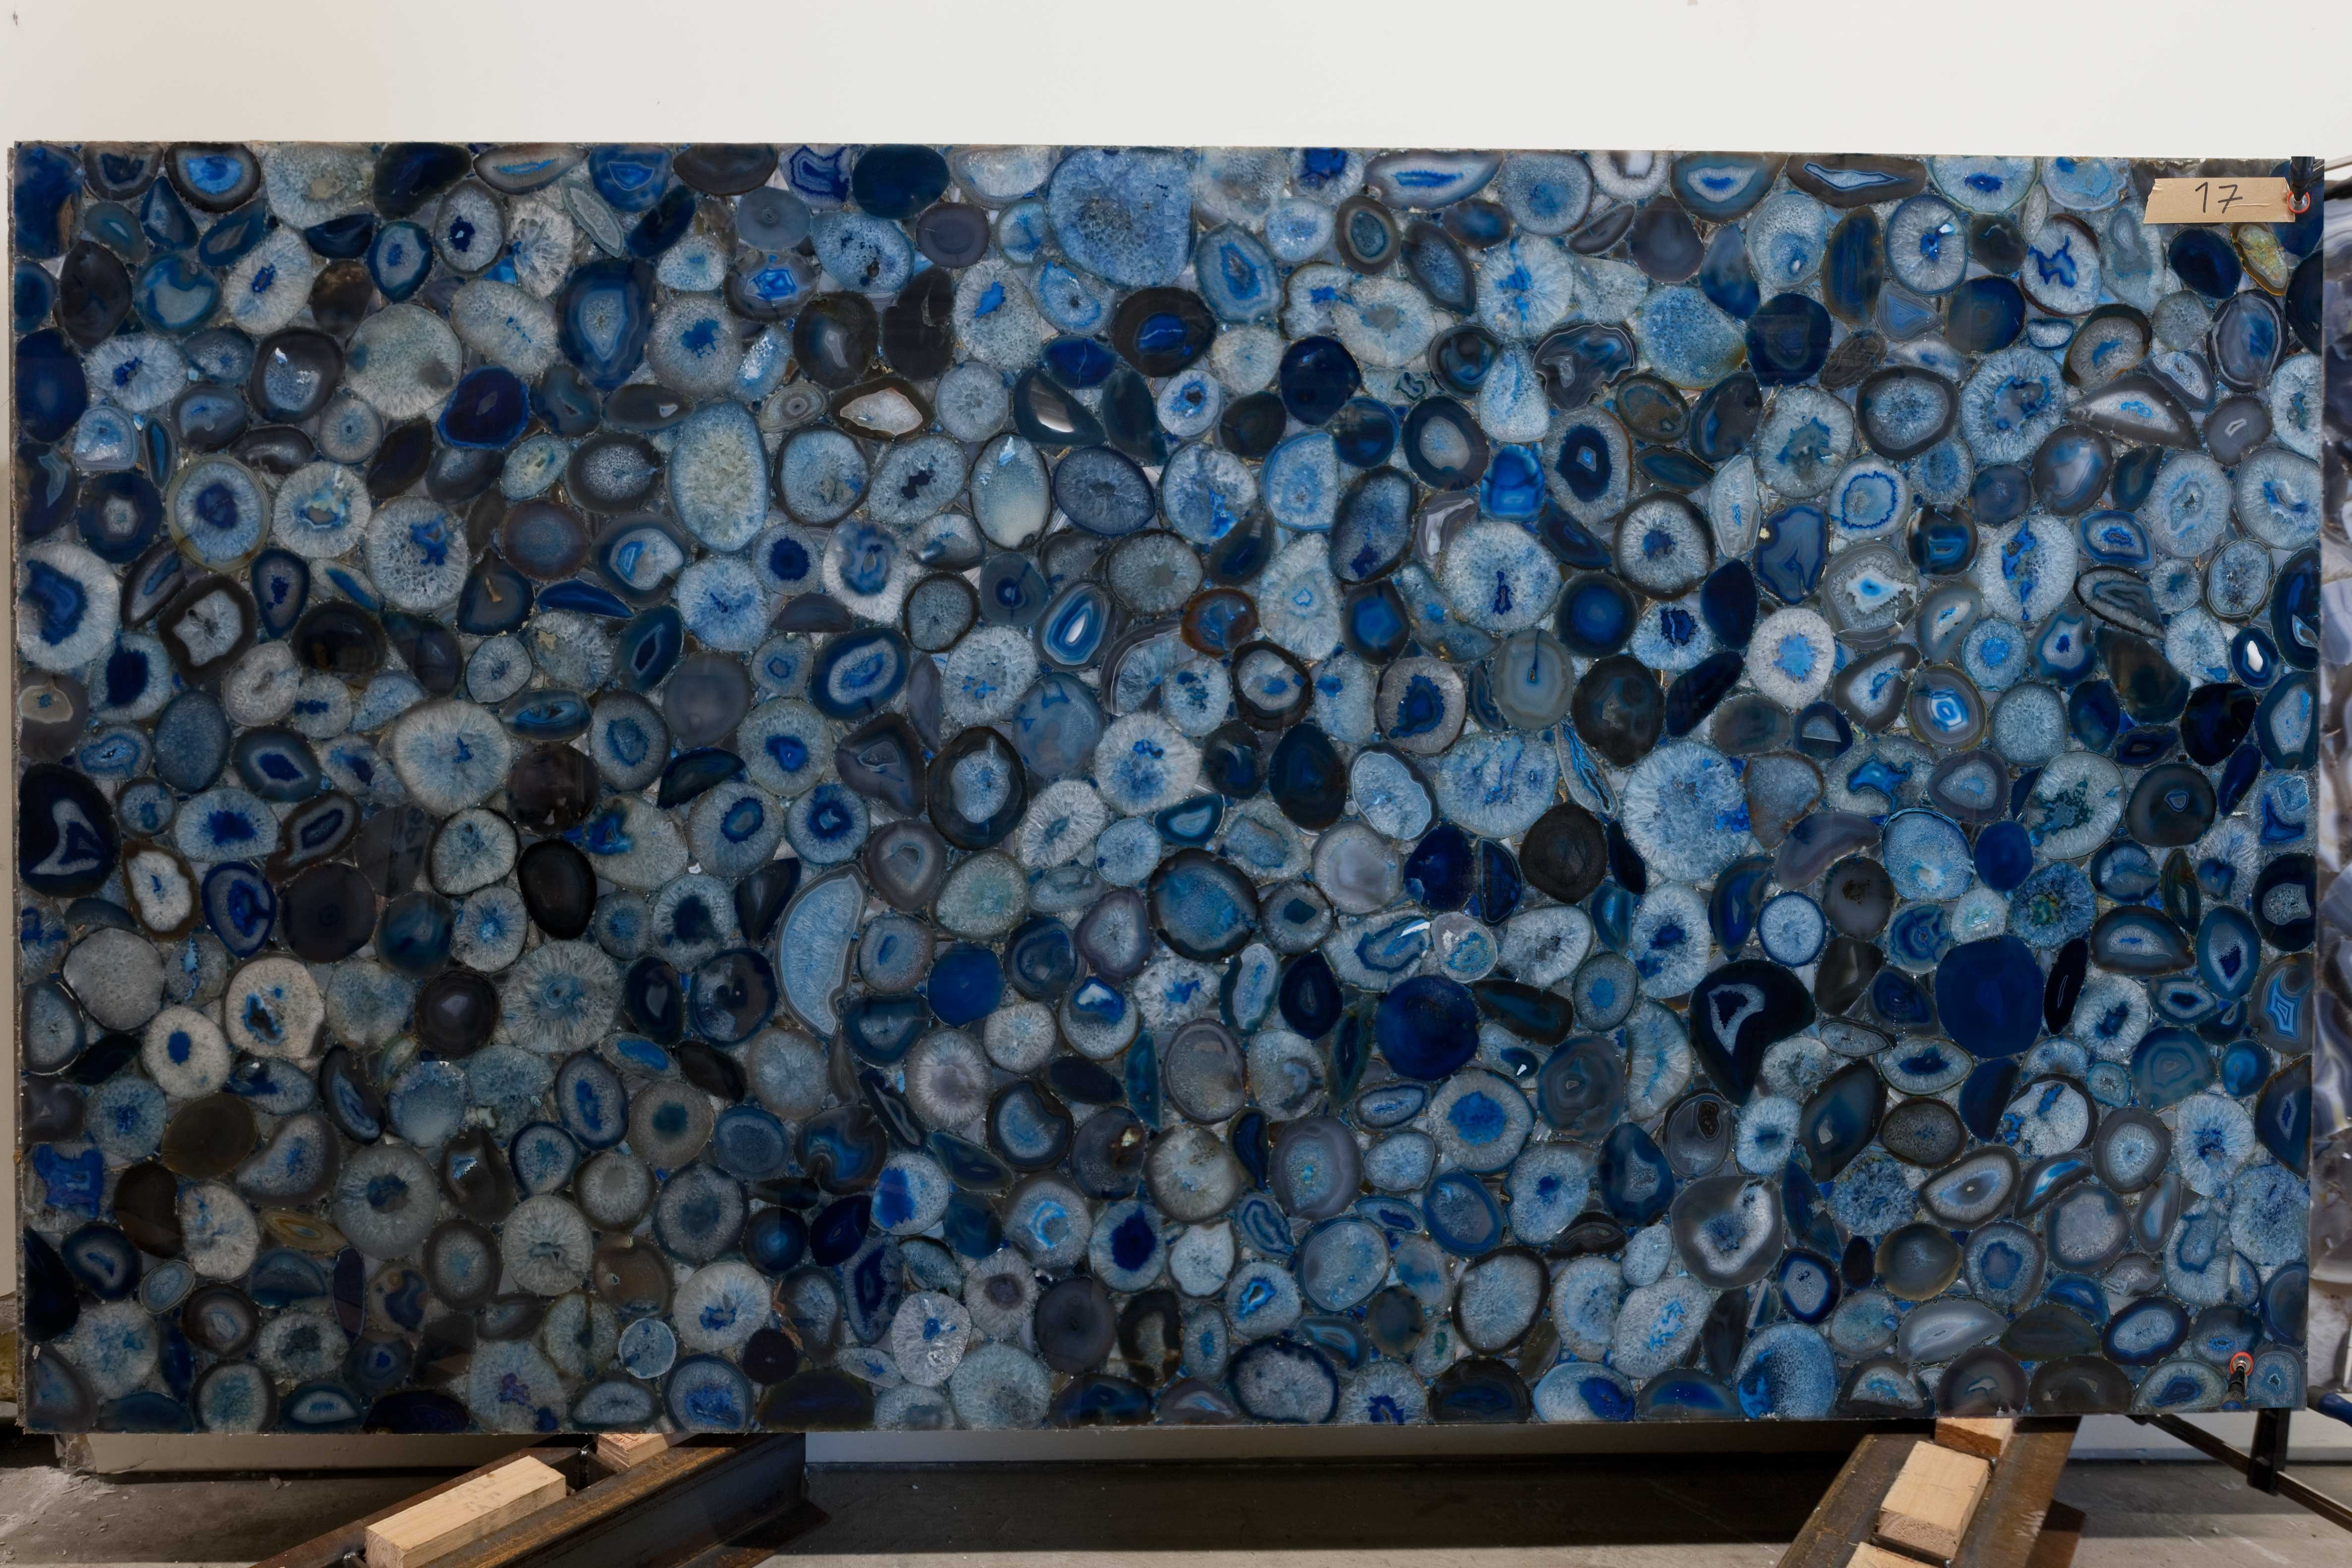 ... But If You Are Looking For A Real Showstopper Of A Kitchen Or Bathroom  Countertop, Onyx Or Gemstone Countertops Might Be A Nice Option For You.